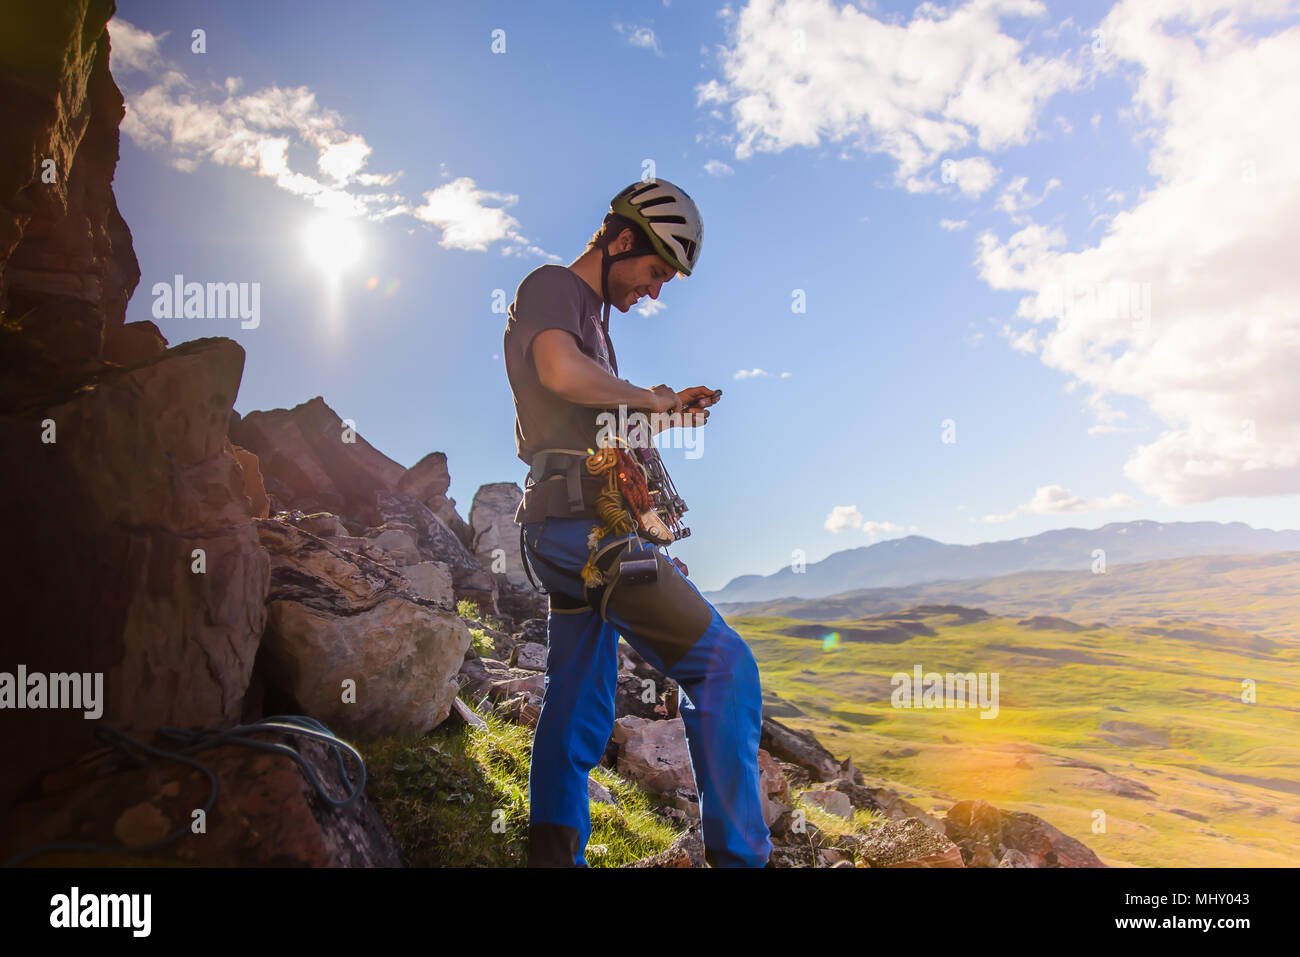 Young male climber preparing to climb, Narsaq, Vestgronland, South Greenland - Stock Image